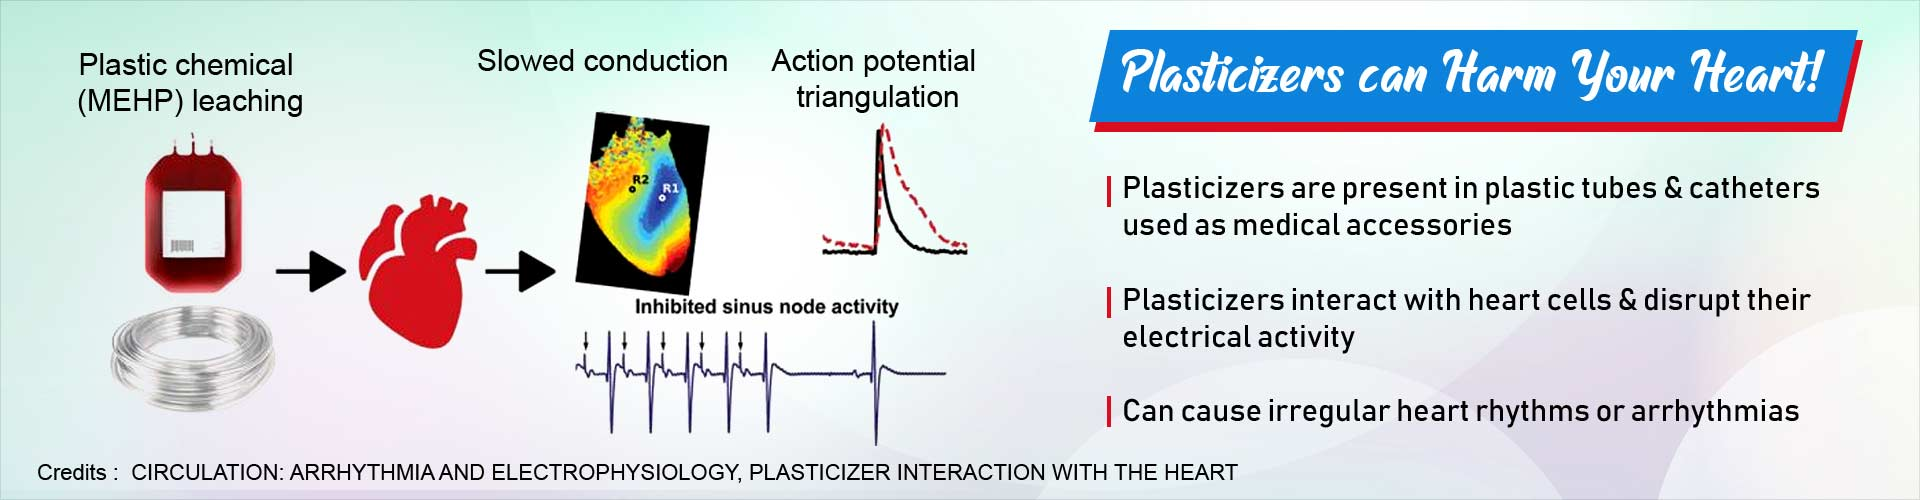 Plasticizers can harm your heart. Plasticizers such as plastic tubes and catheters are used in medical accessories. Plasticizers interact with heart cells and disrupt their electrical activity. Can cause irregular heart rhythms or arrhythmias.